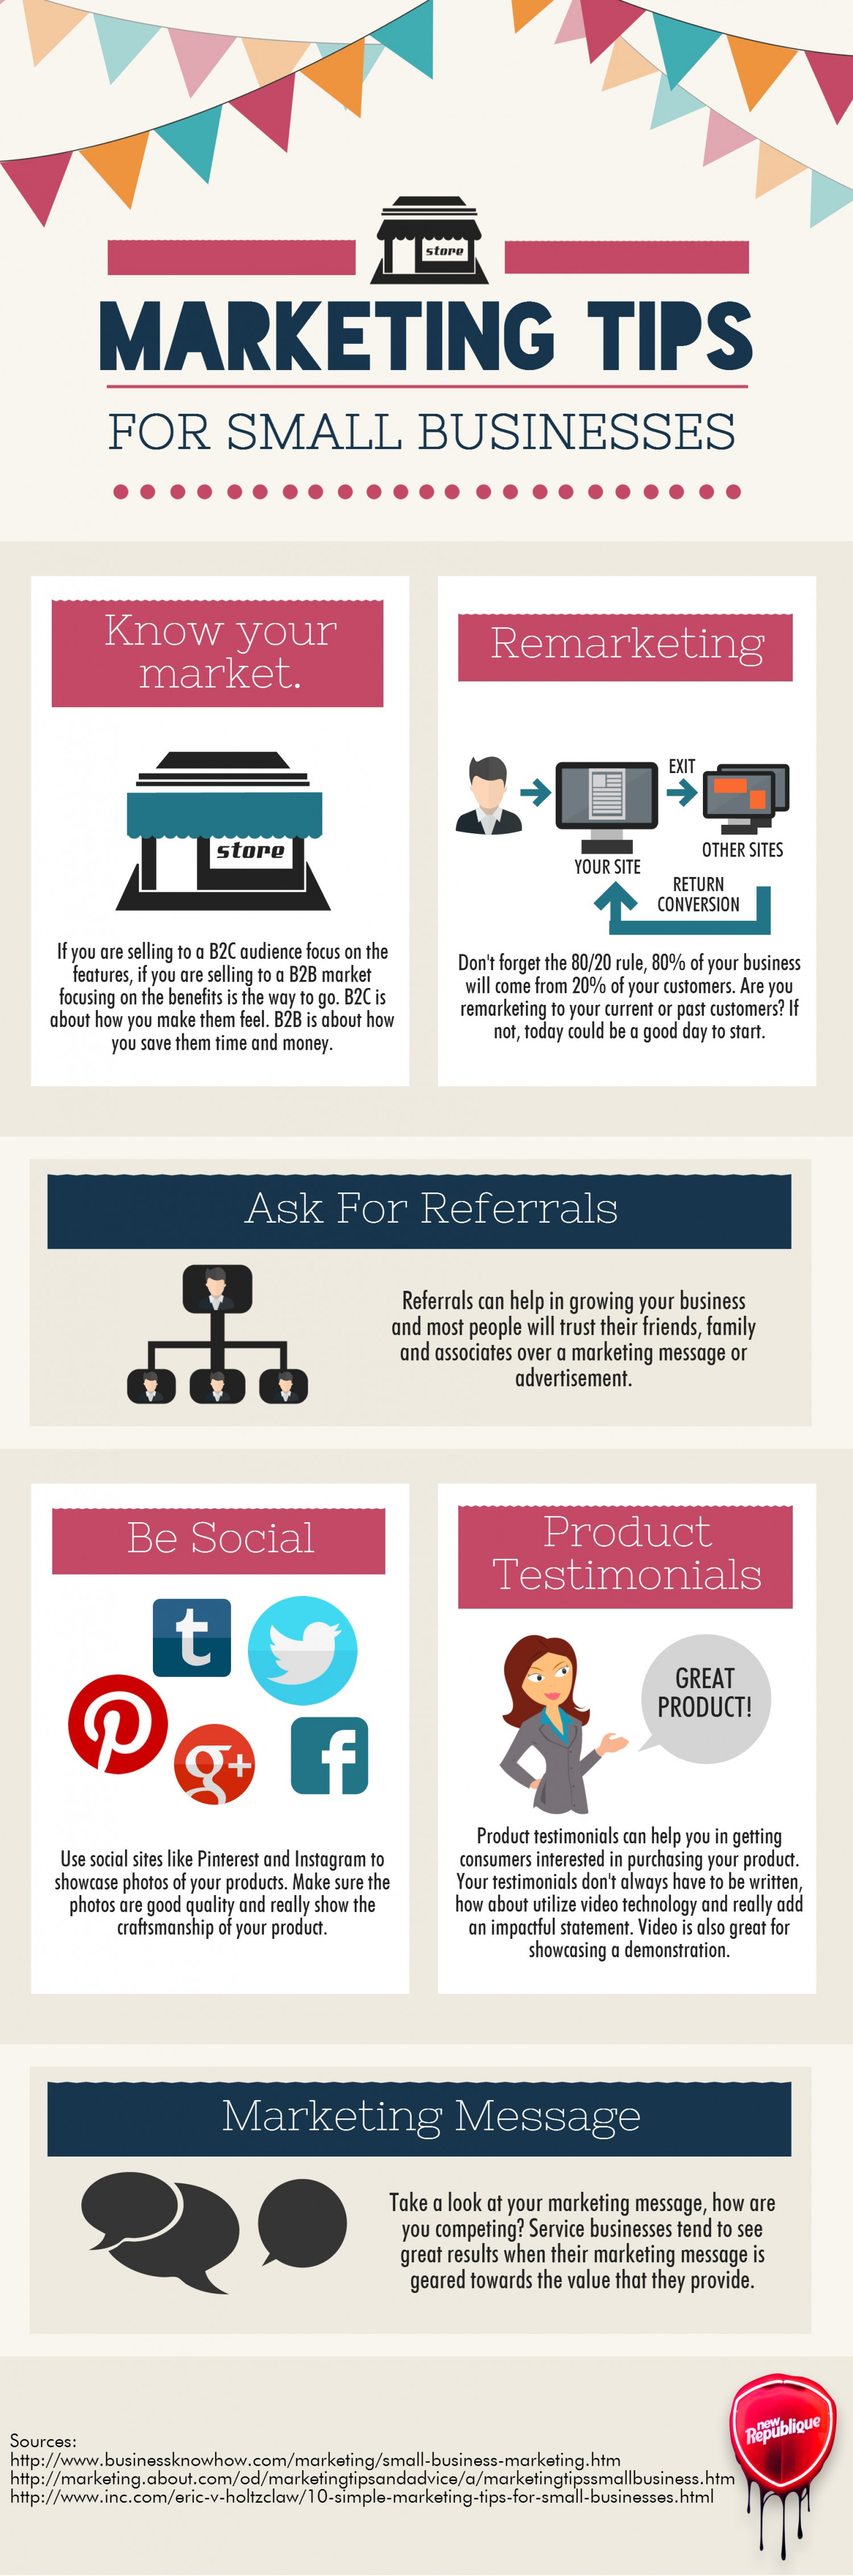 Marketing Tips for Small Business Infographic